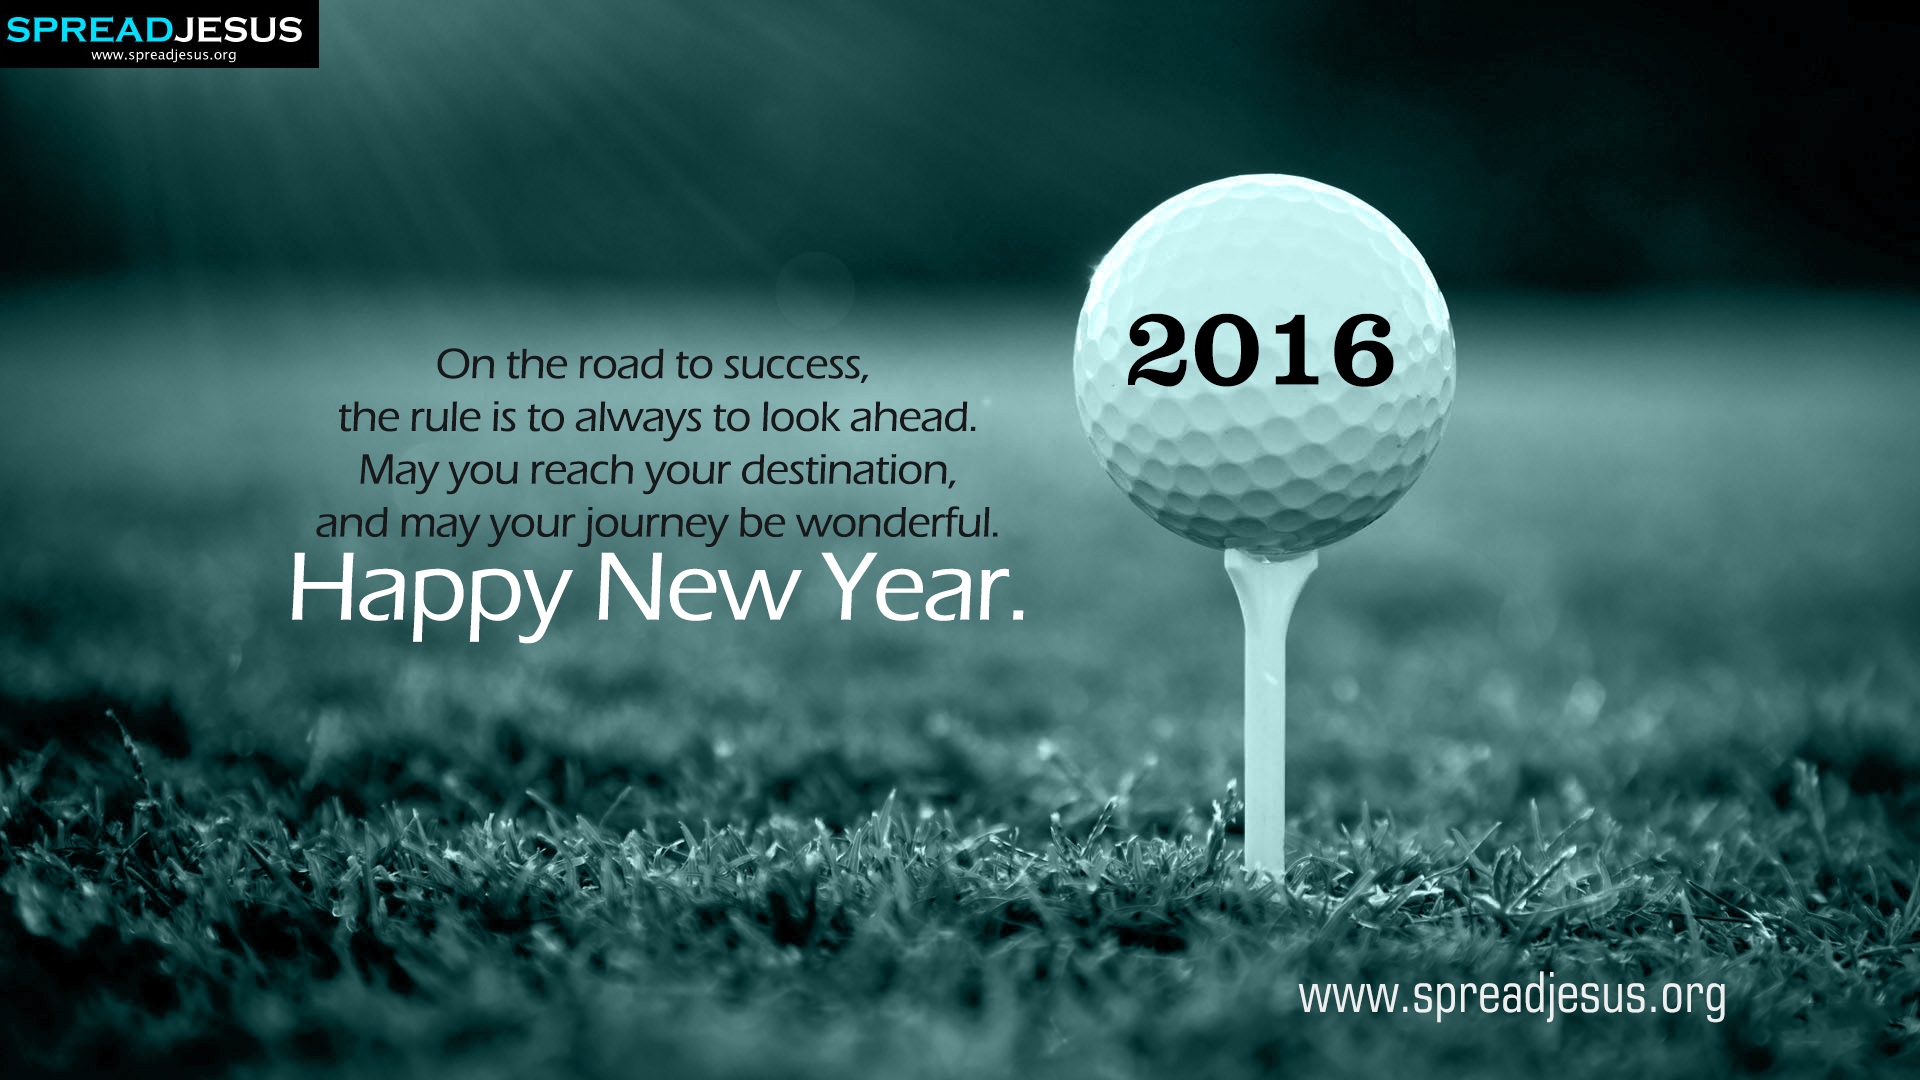 Happy New Year 2016 HD Wallpapers Download-1 Happy New